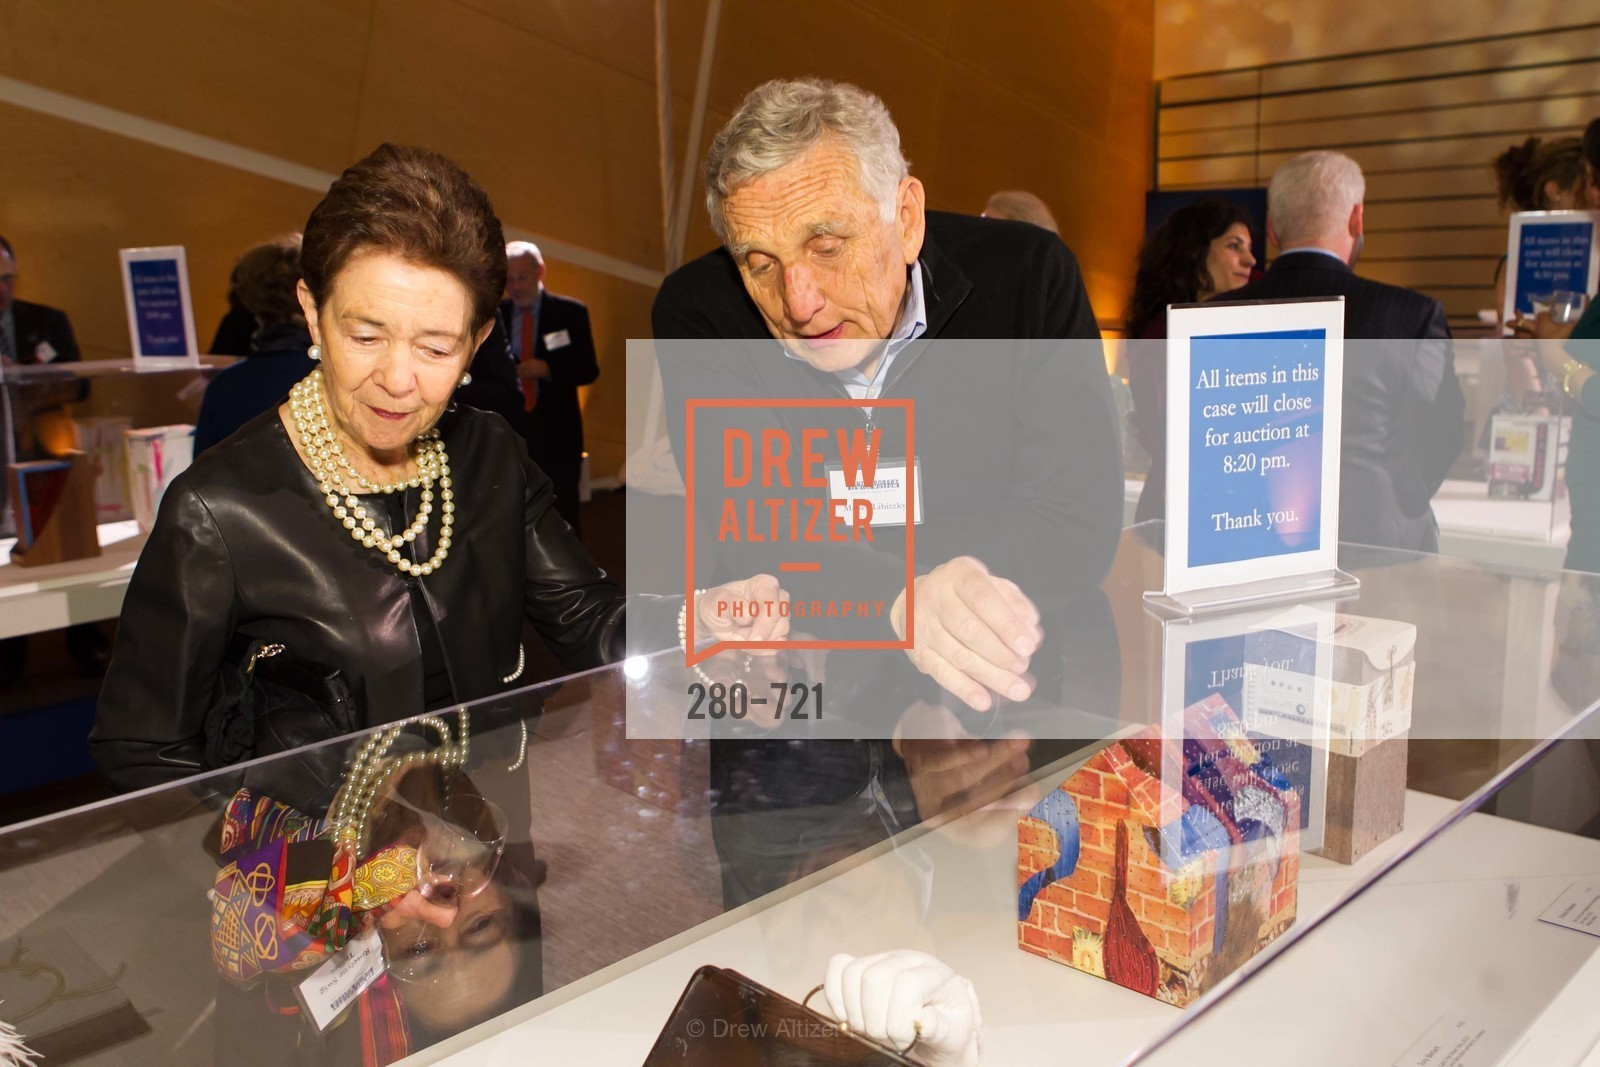 Roselyne Swig, Moses Libitzky, The 2015 Dorothy Saxe Invitational Celebration at the JEWISH MUSEUM, US, May 13th, 2015,Drew Altizer, Drew Altizer Photography, full-service agency, private events, San Francisco photographer, photographer california